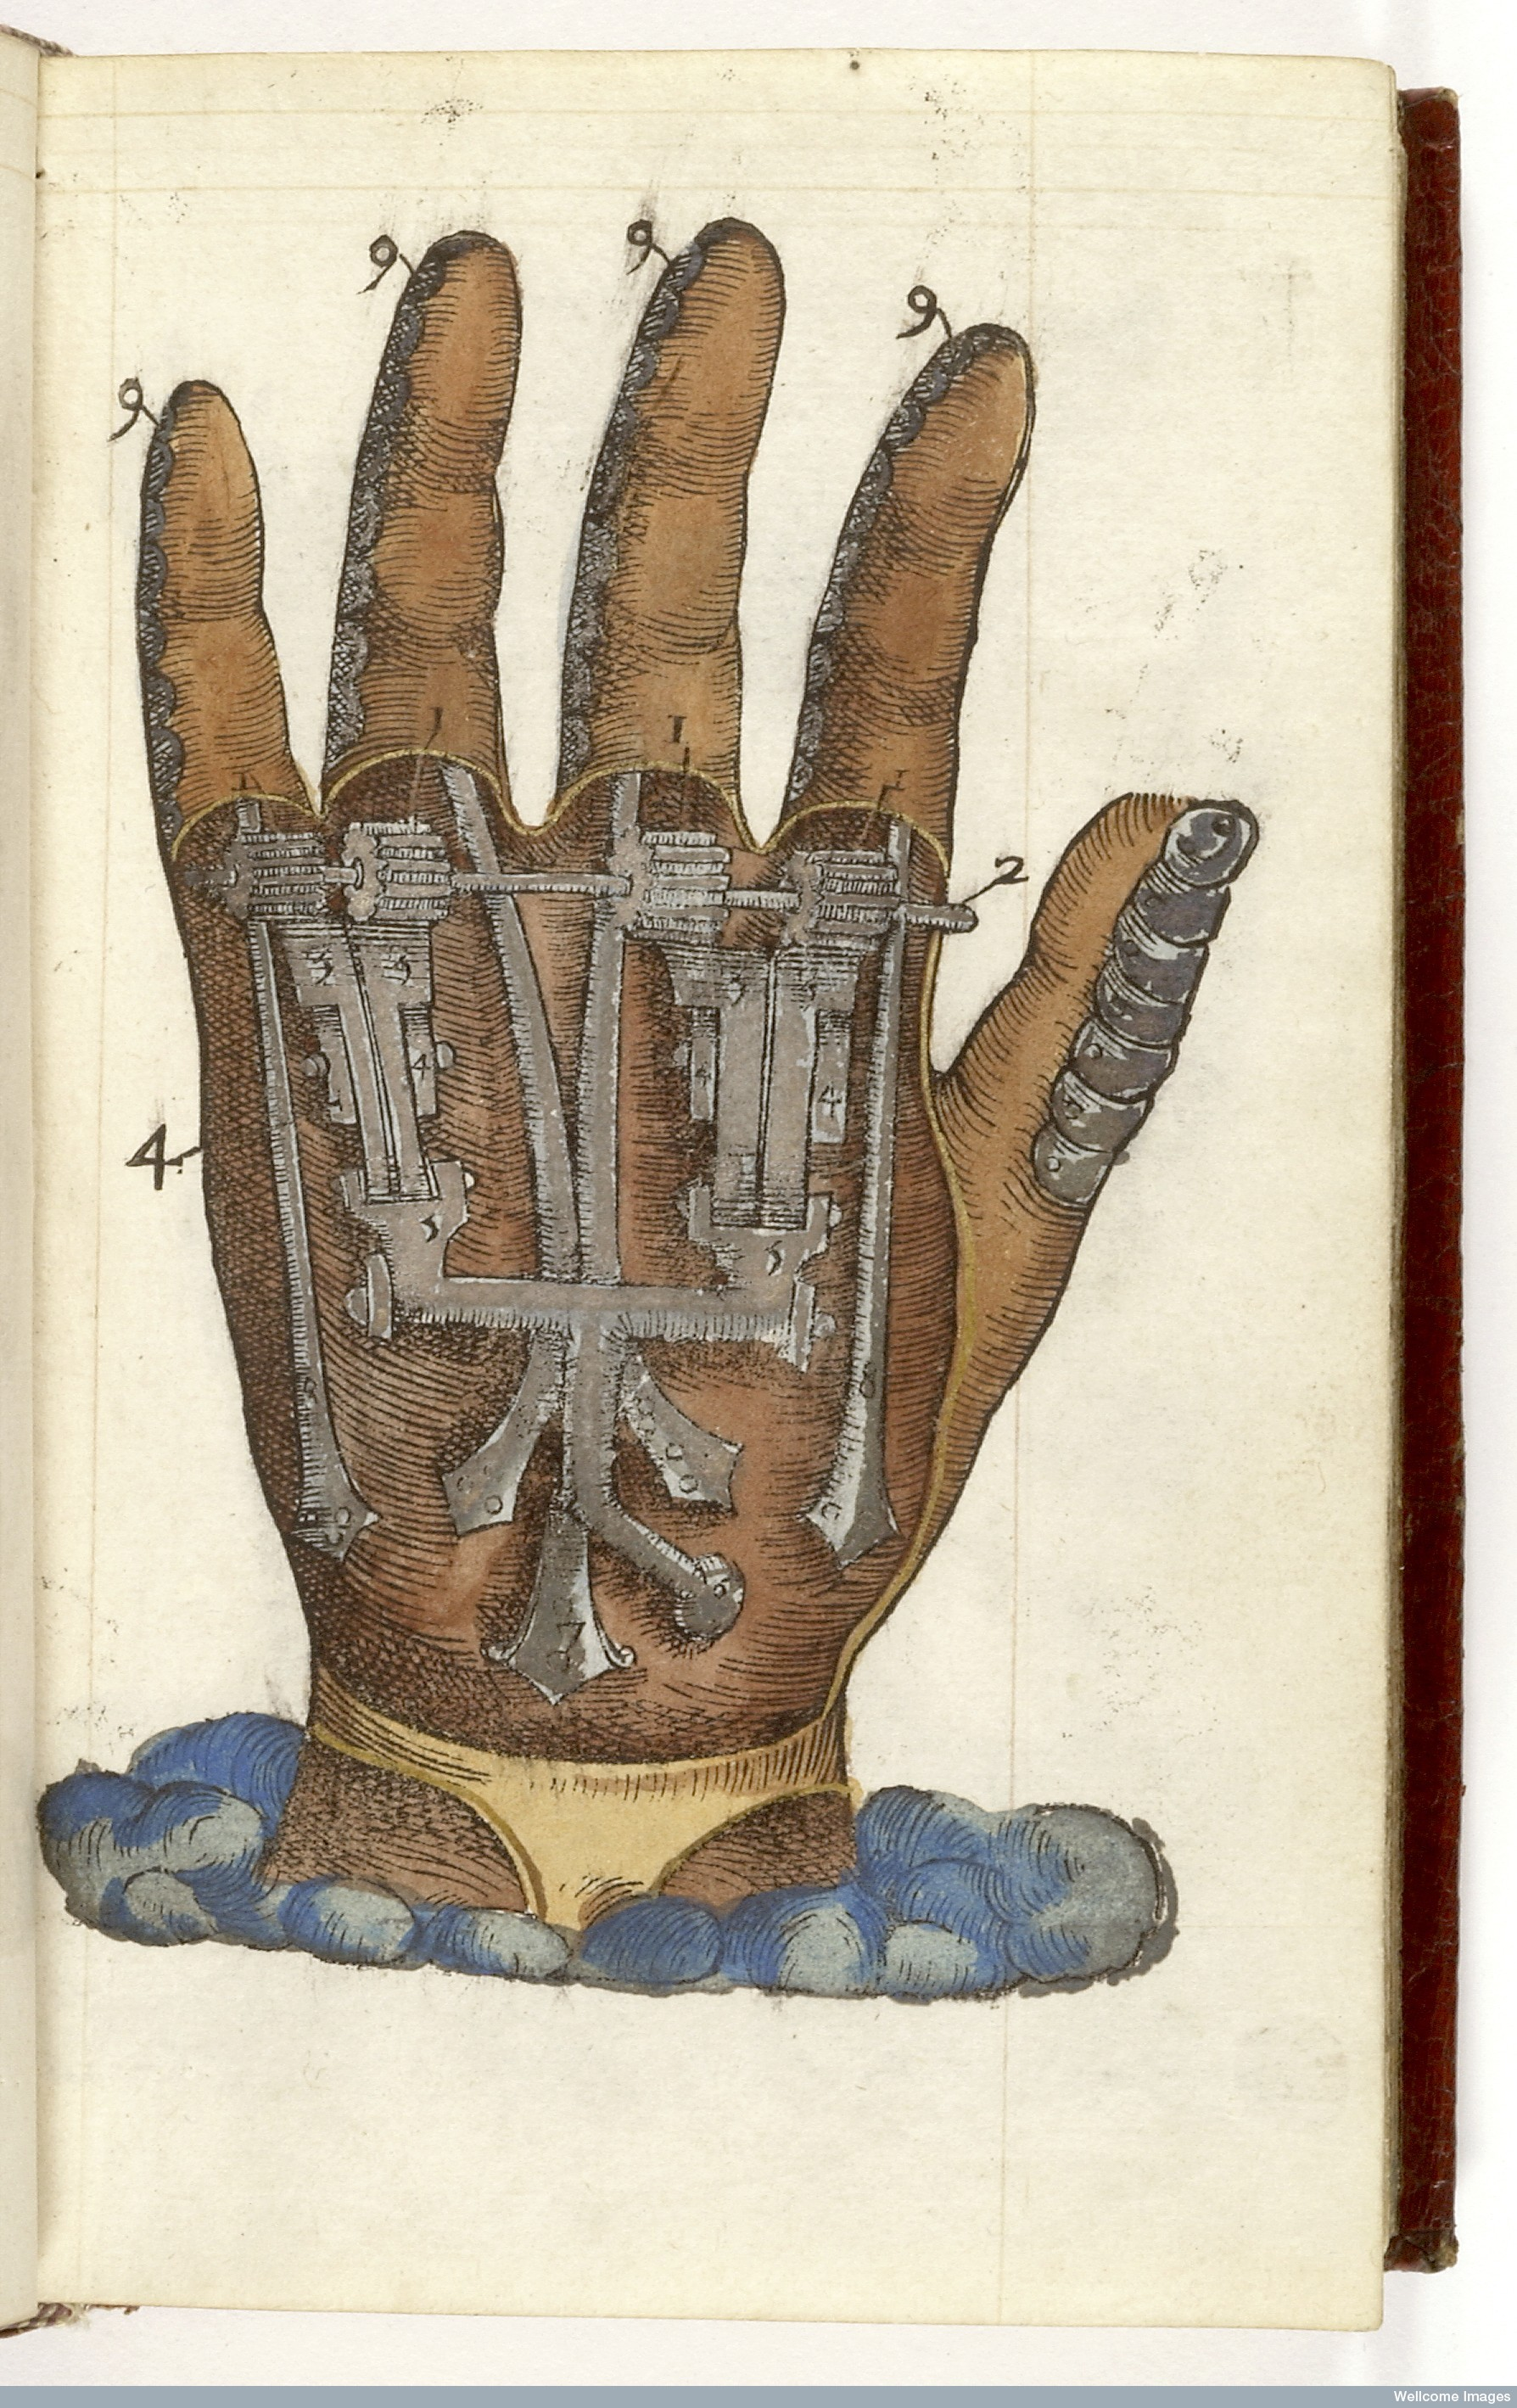 L0043496 Ambroise Pare: prosthetics, mechanical hand